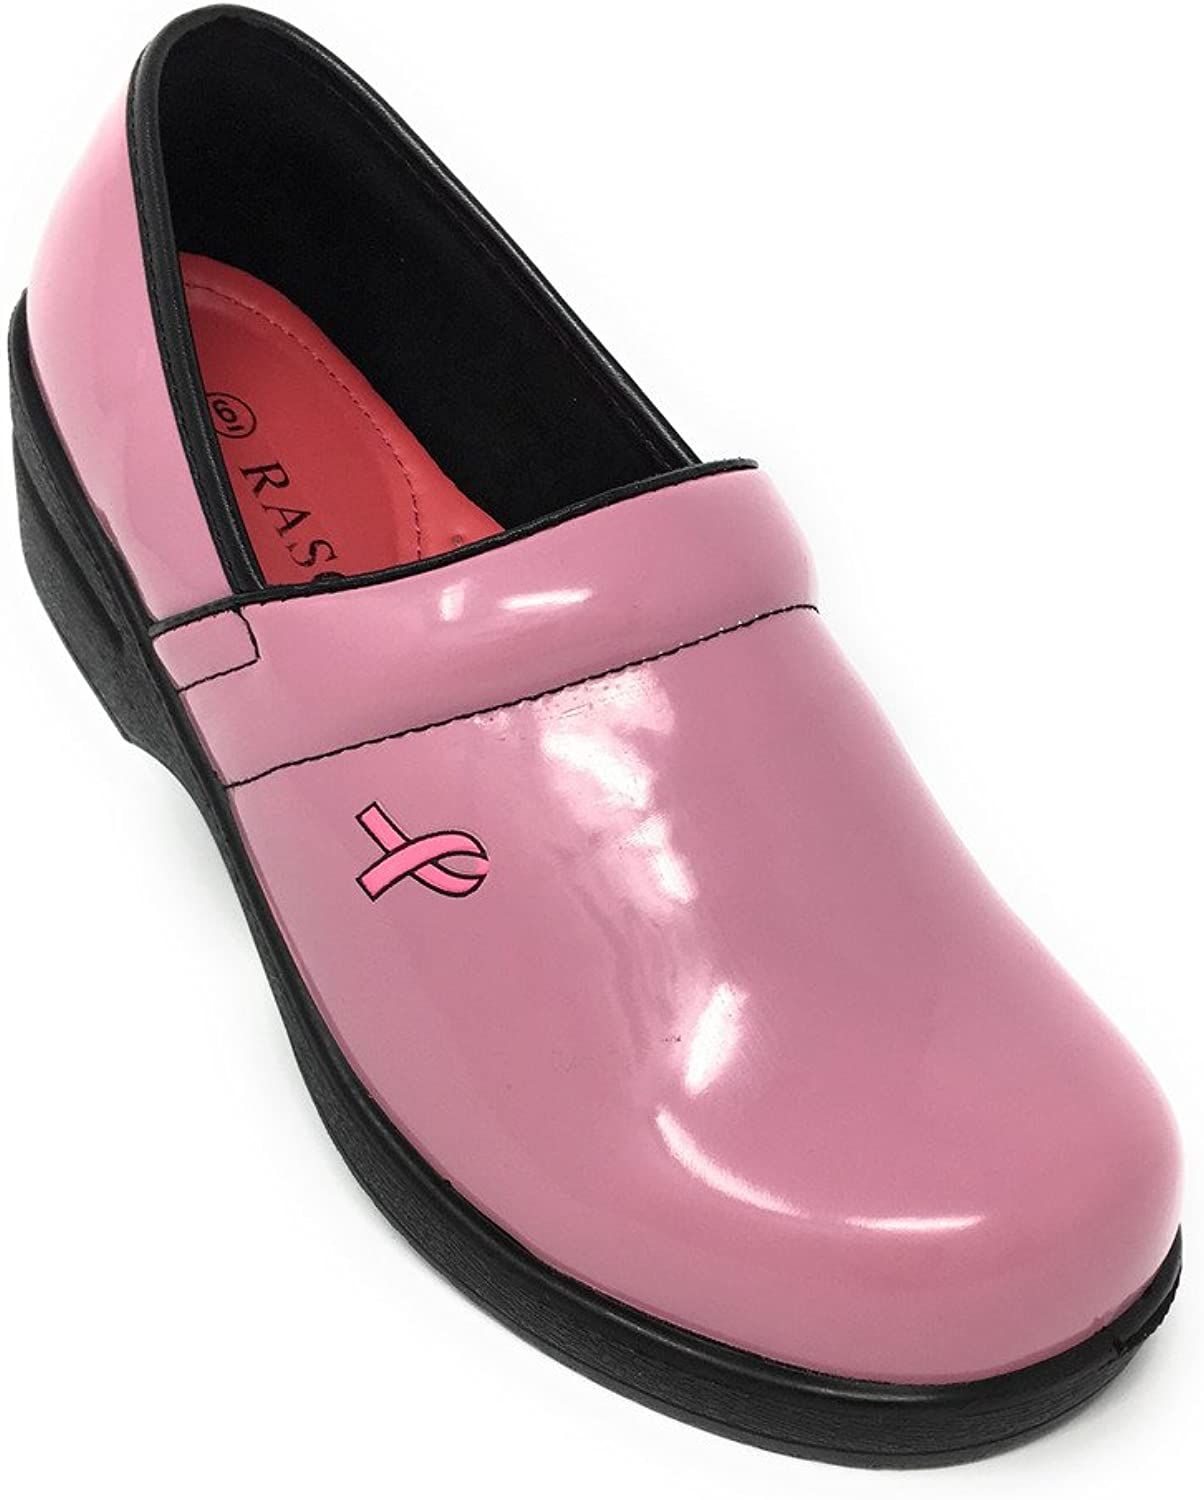 Rasolli Women's Professional Closed Back Clogs, Pink Breast Cancer Awareness Ribbon